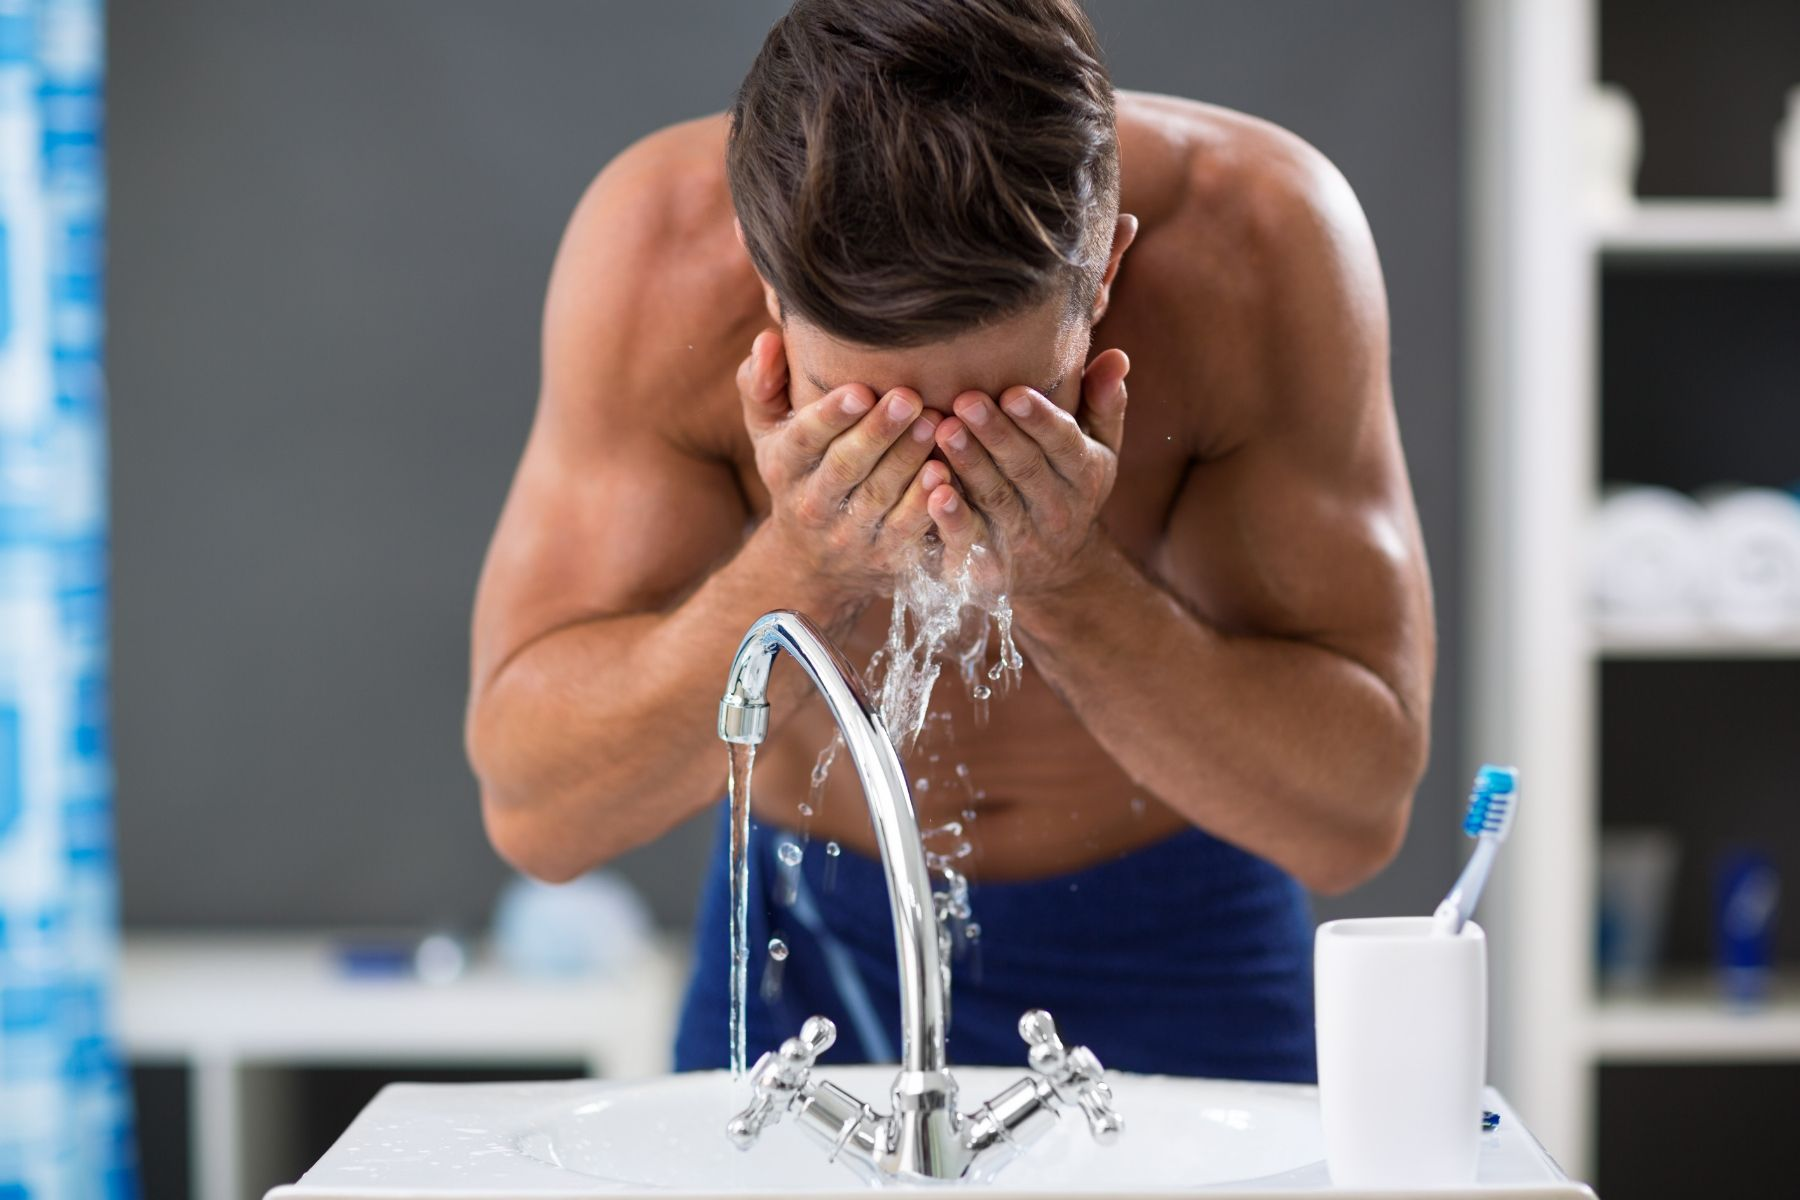 Your Step-by-Step Post-Shave Routine